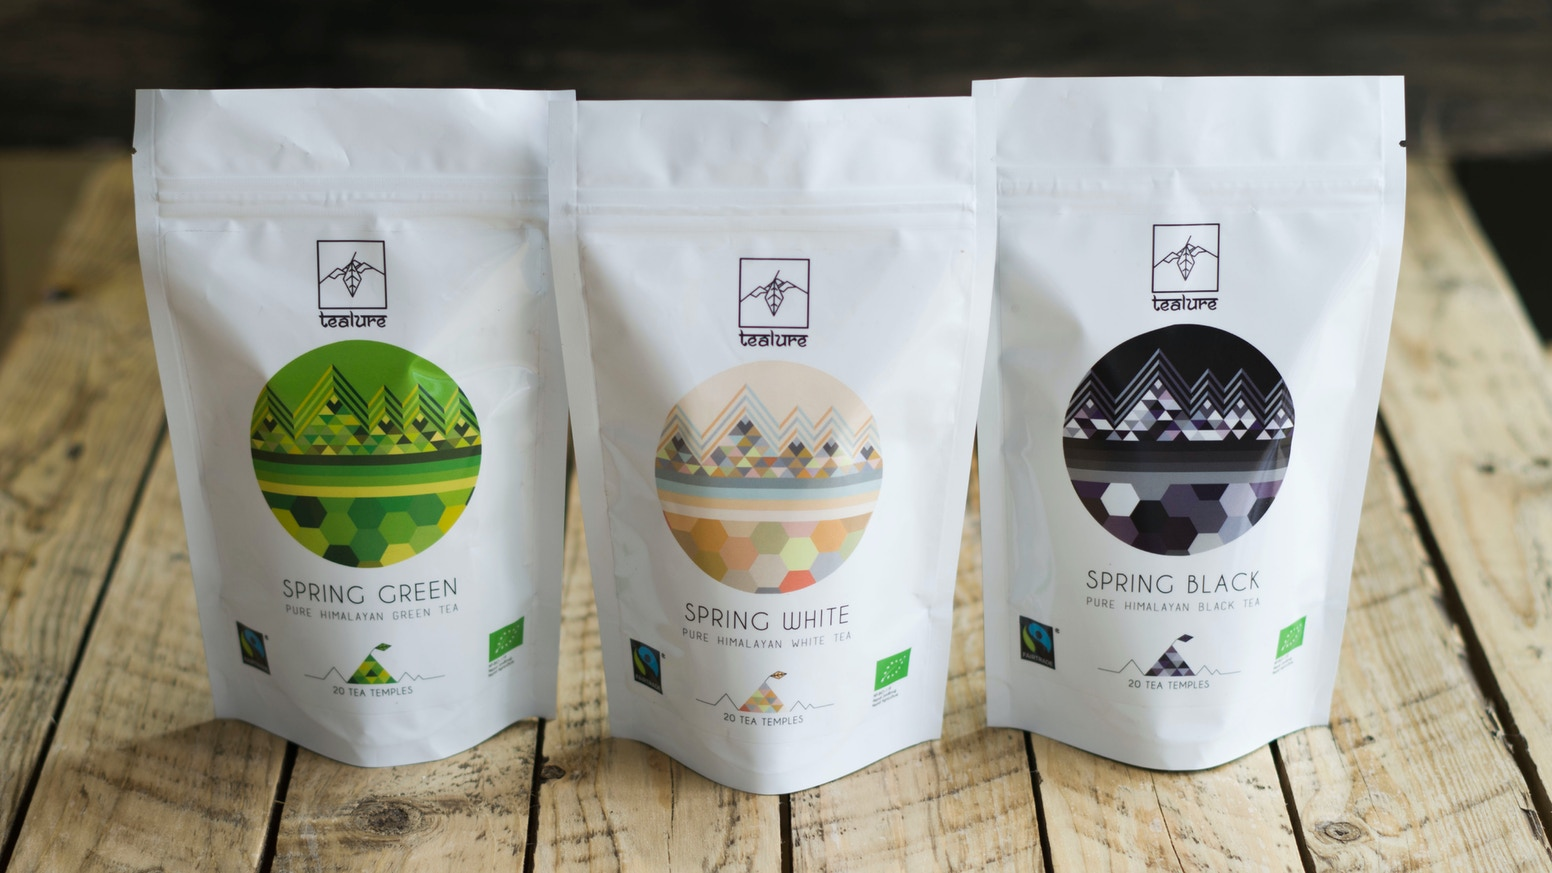 Specialty tea from the Himalayas in pyramid tea sachets, for easy use on the go, at home or in the office